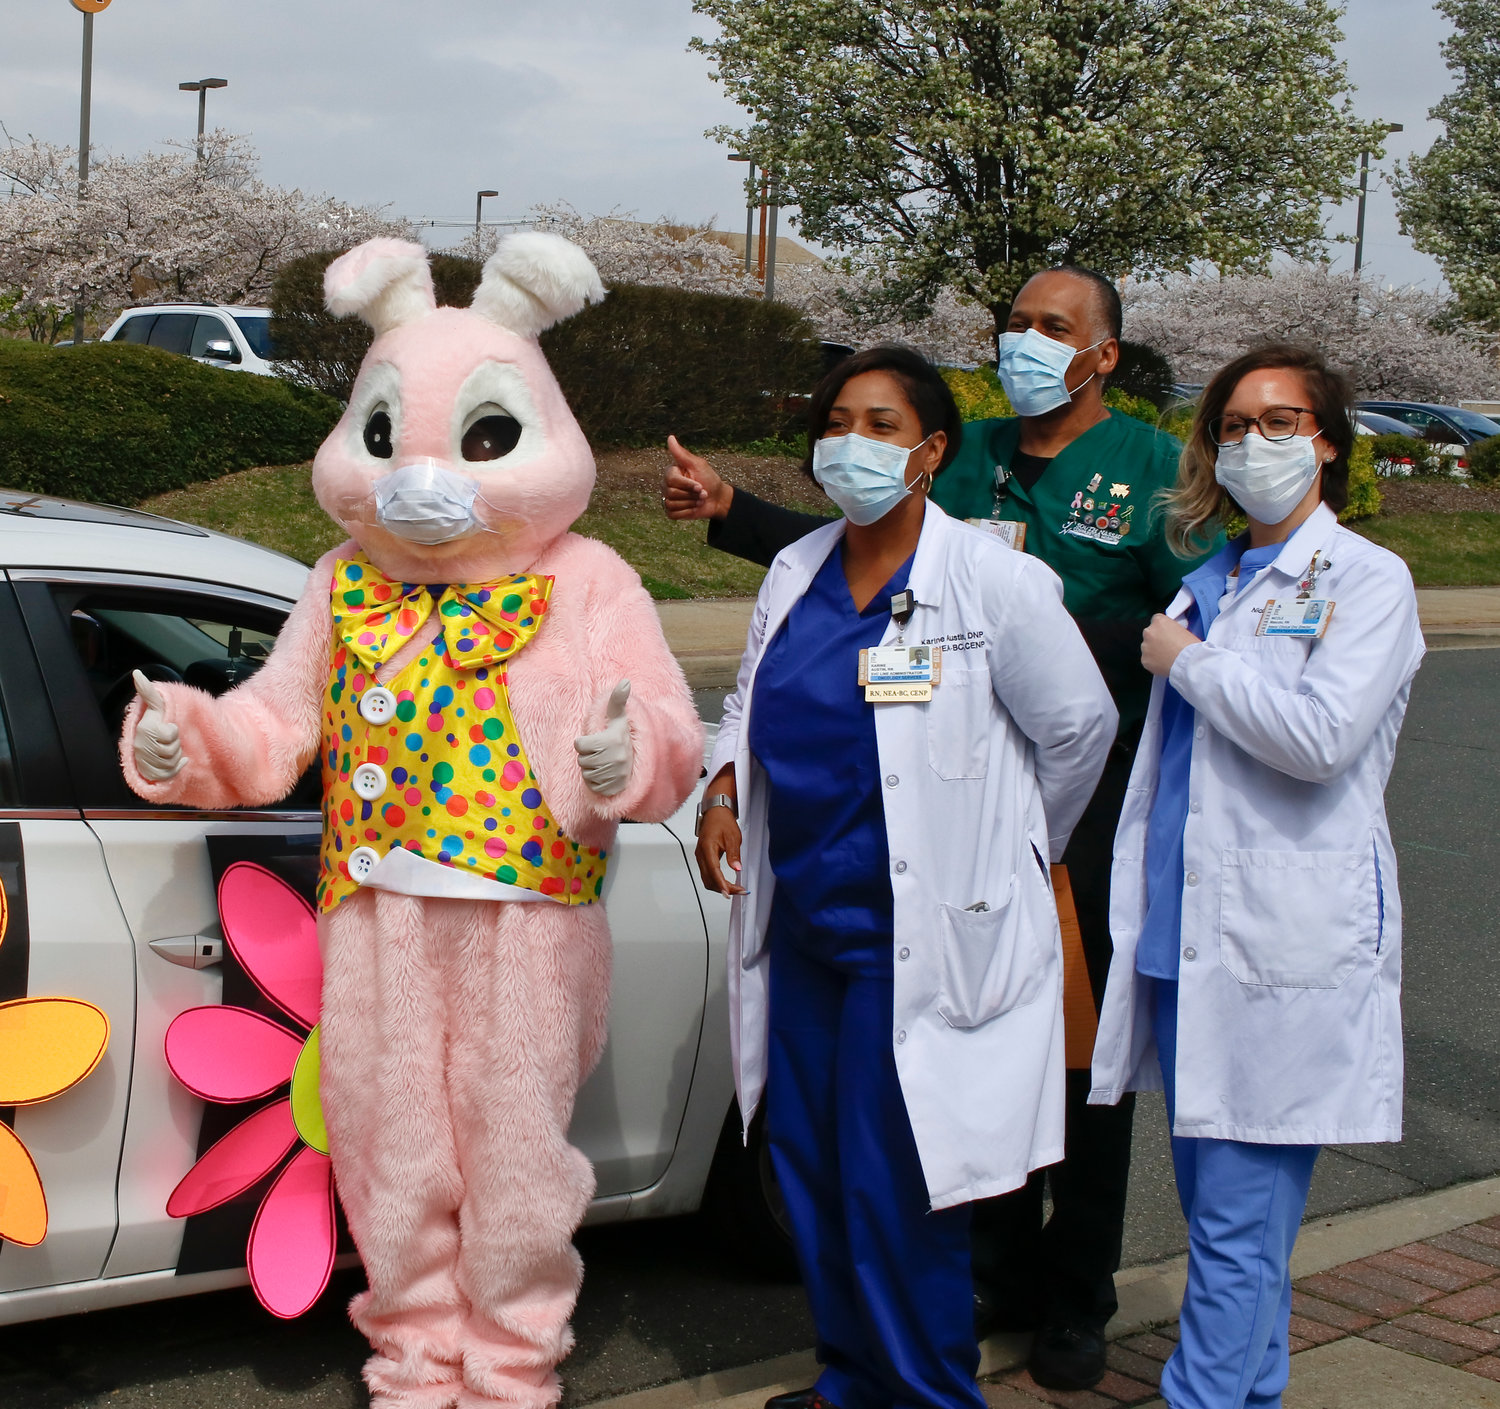 Even the Easter bunny made an appearance at the parade, mask and all, and spent some time with, from left, Nurse Karine Austin, Willie Wright and Nurse Nicole Mascolo.